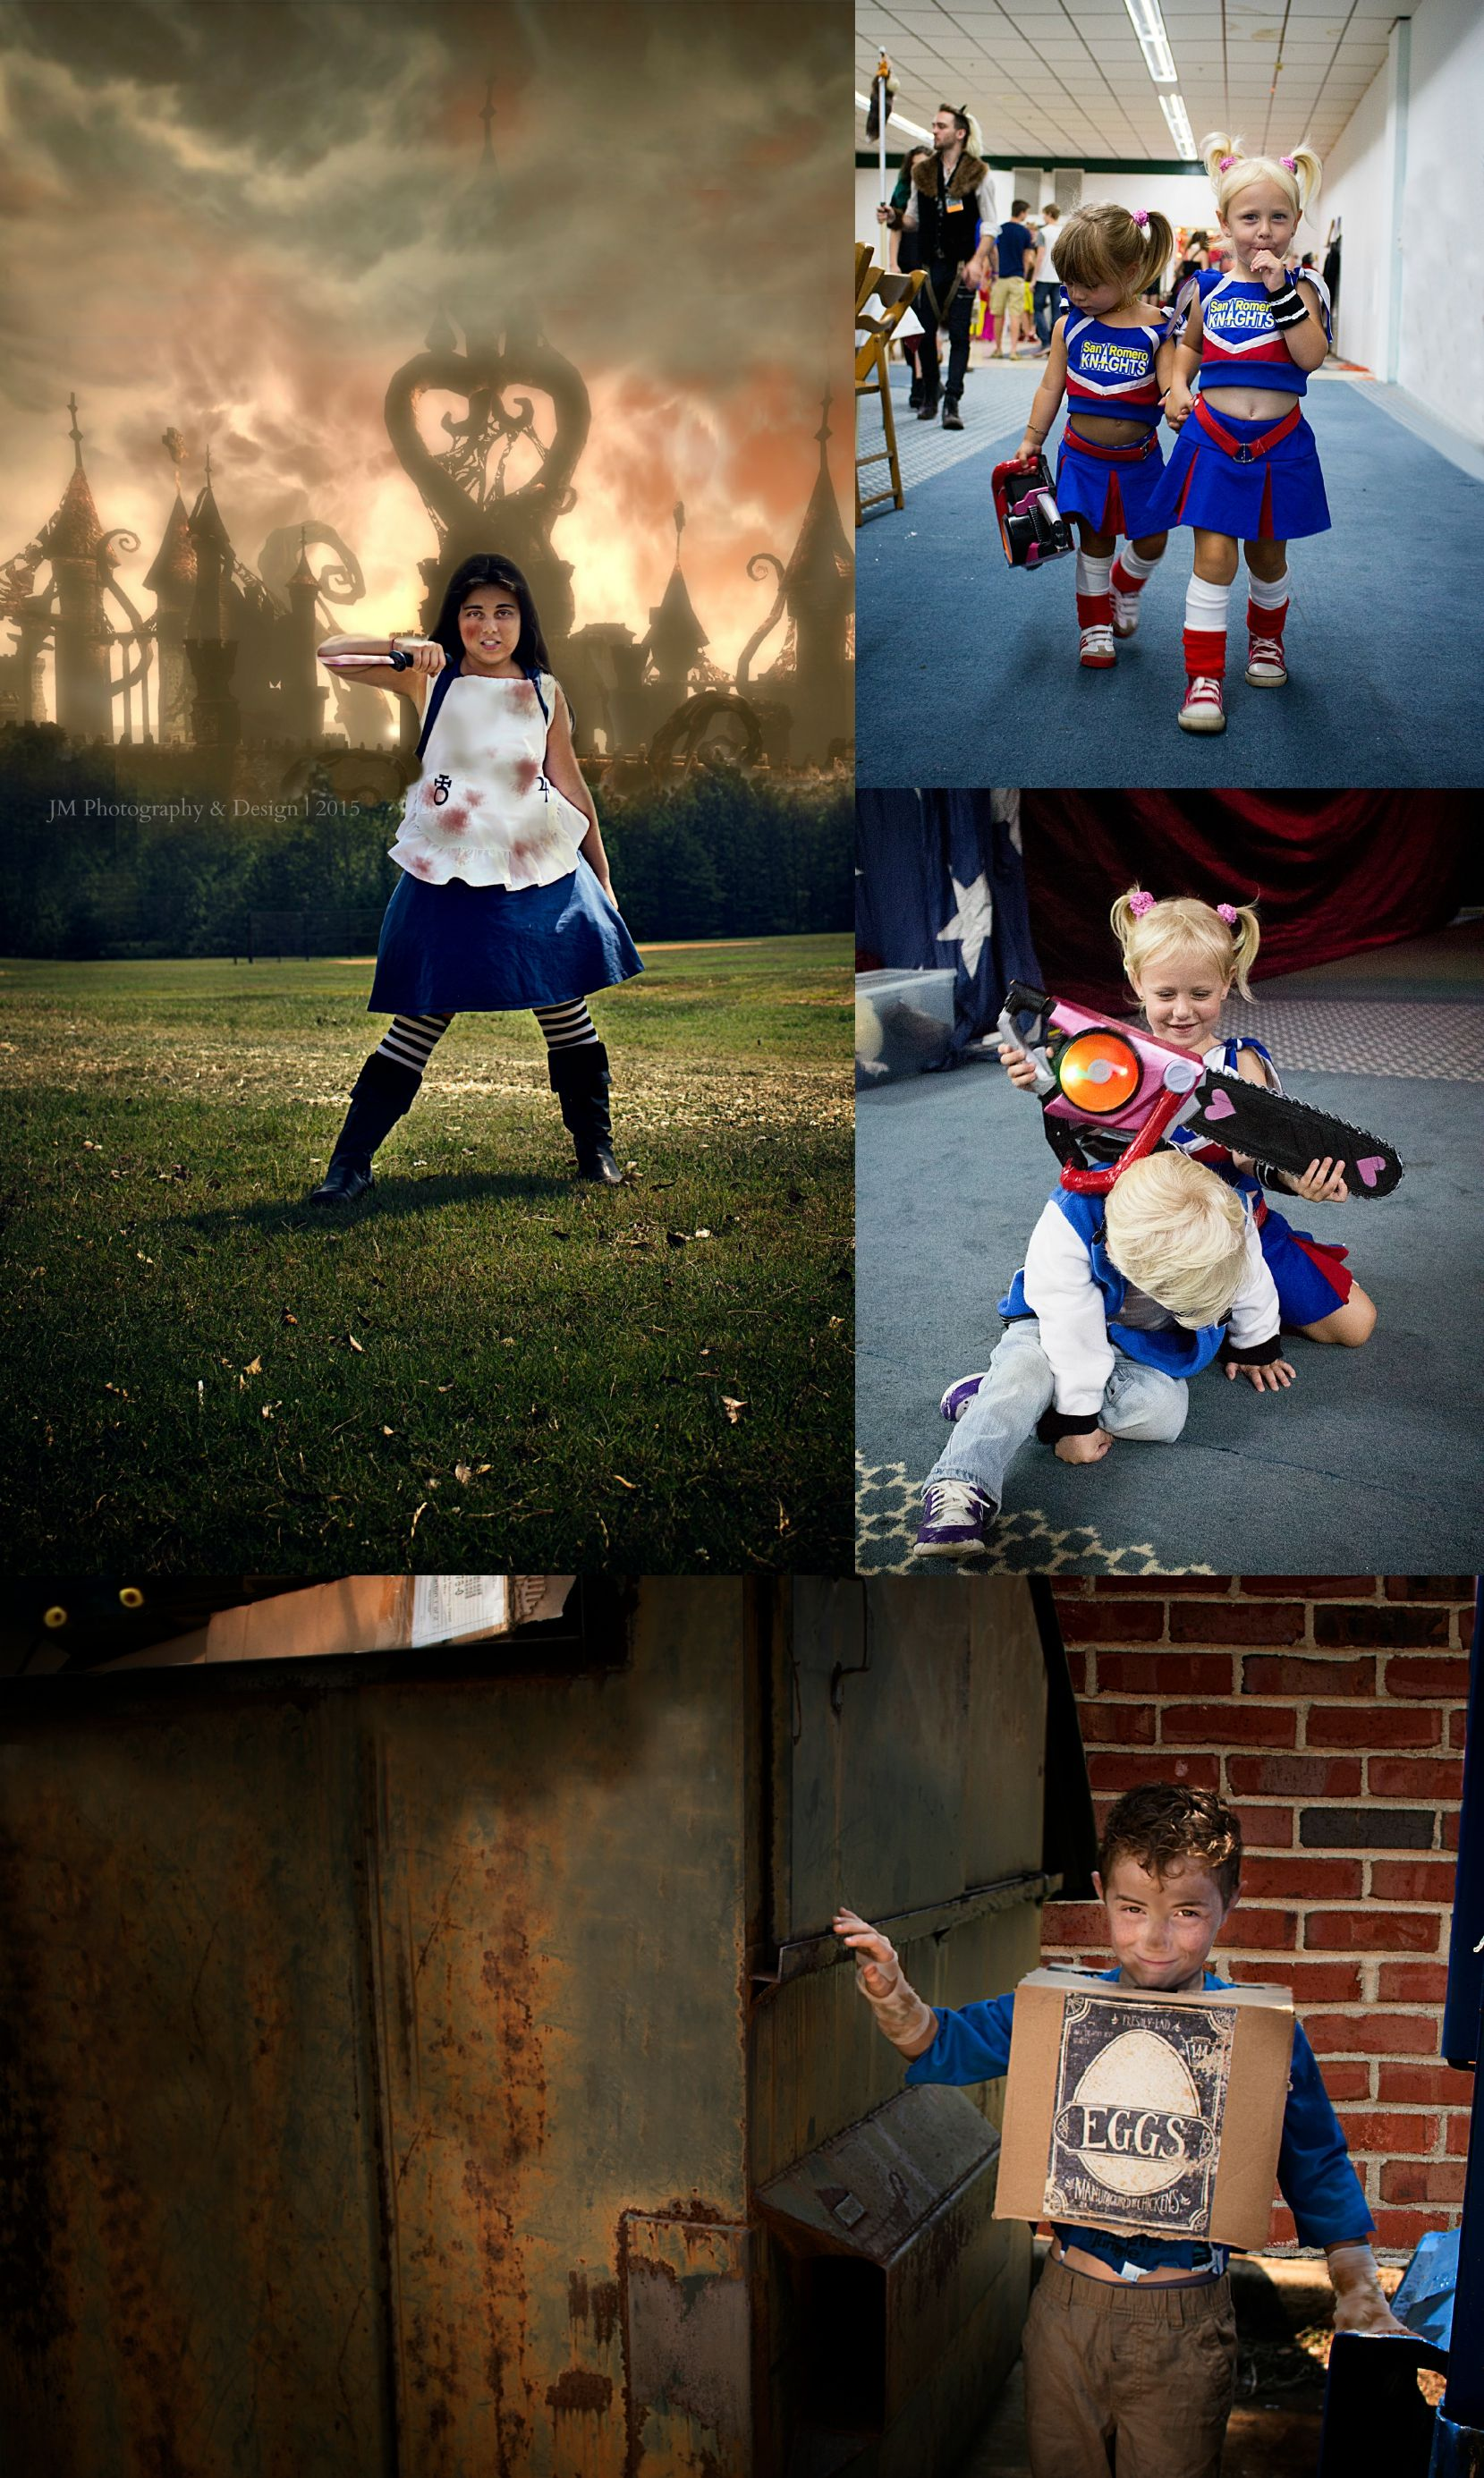 Mini cosplayers #boxtrolls #EGGS #alicemadnessreturns #lollipopchainsaw #cosplay